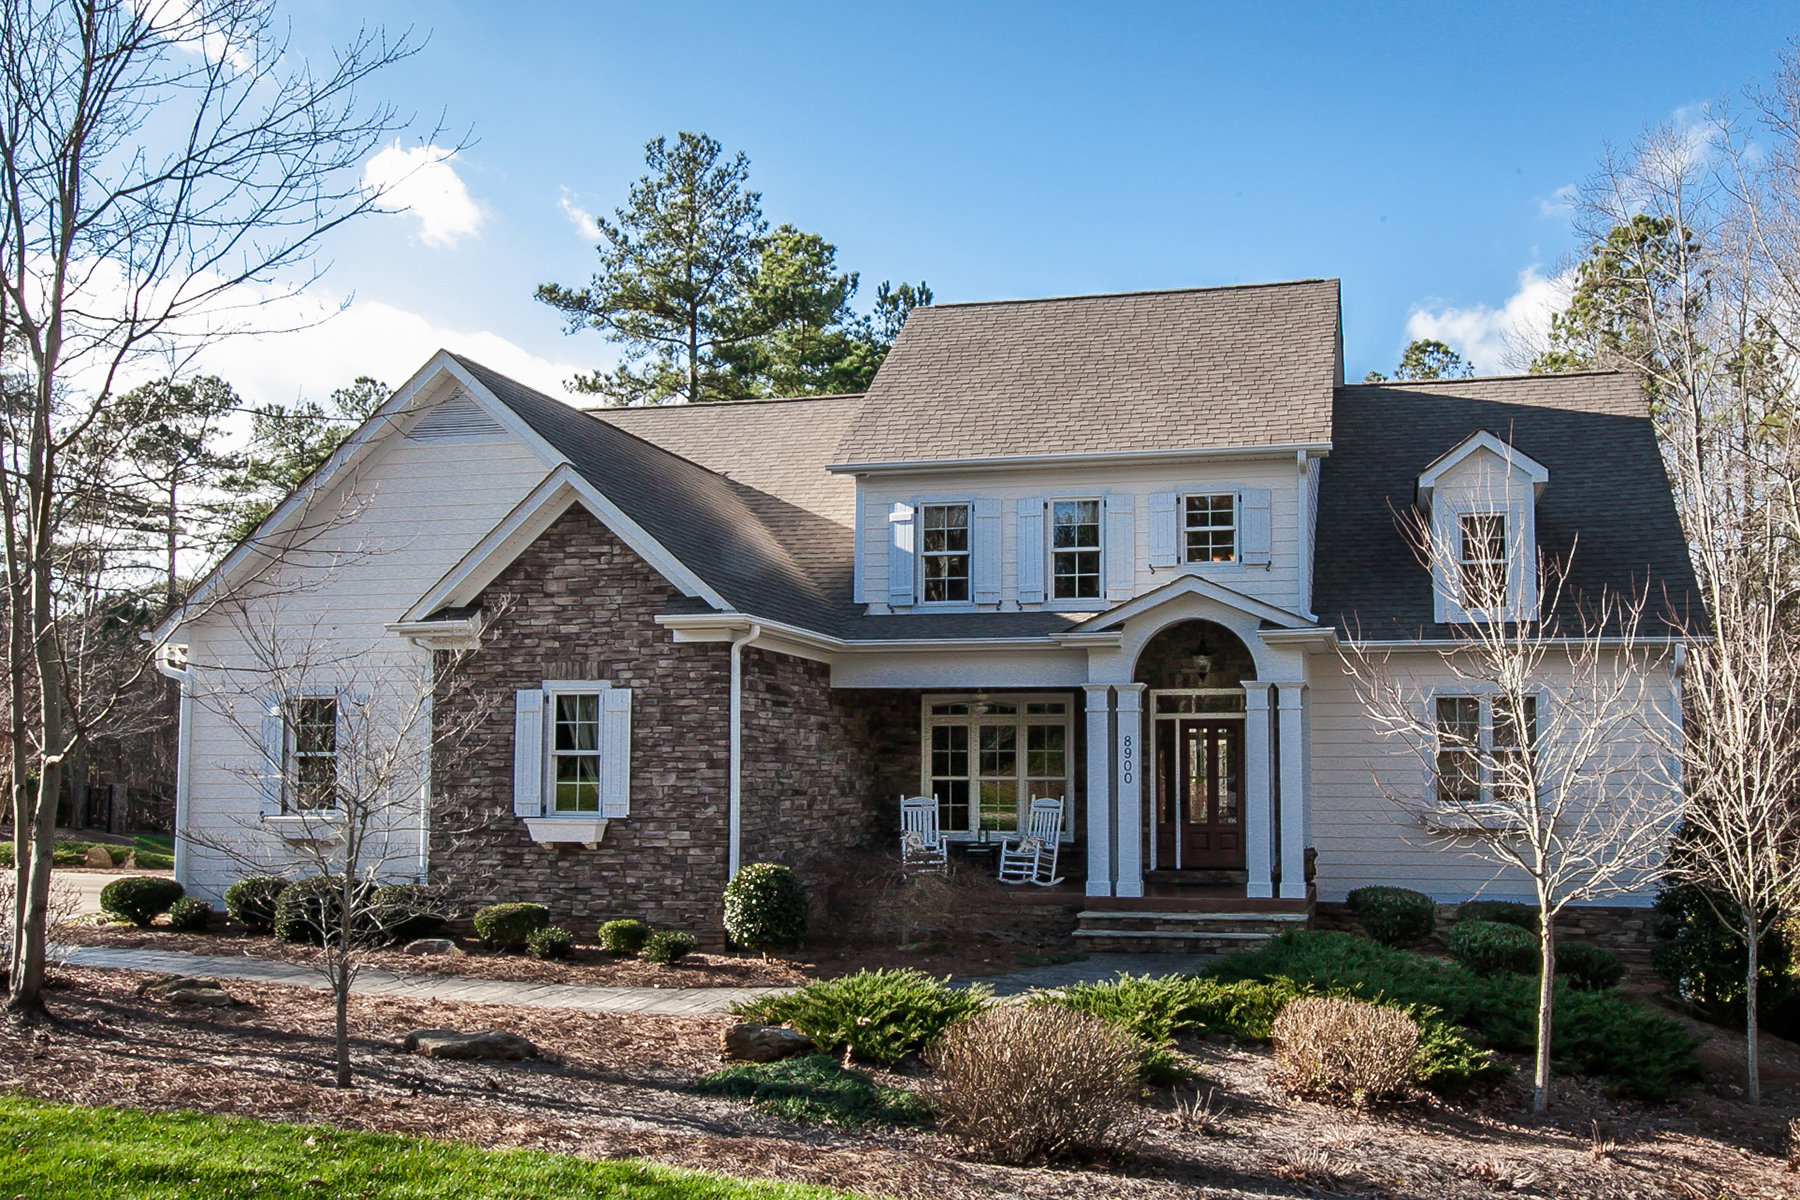 8900 Bluestone Bay Ct, Sherrills Ford, NC 28673